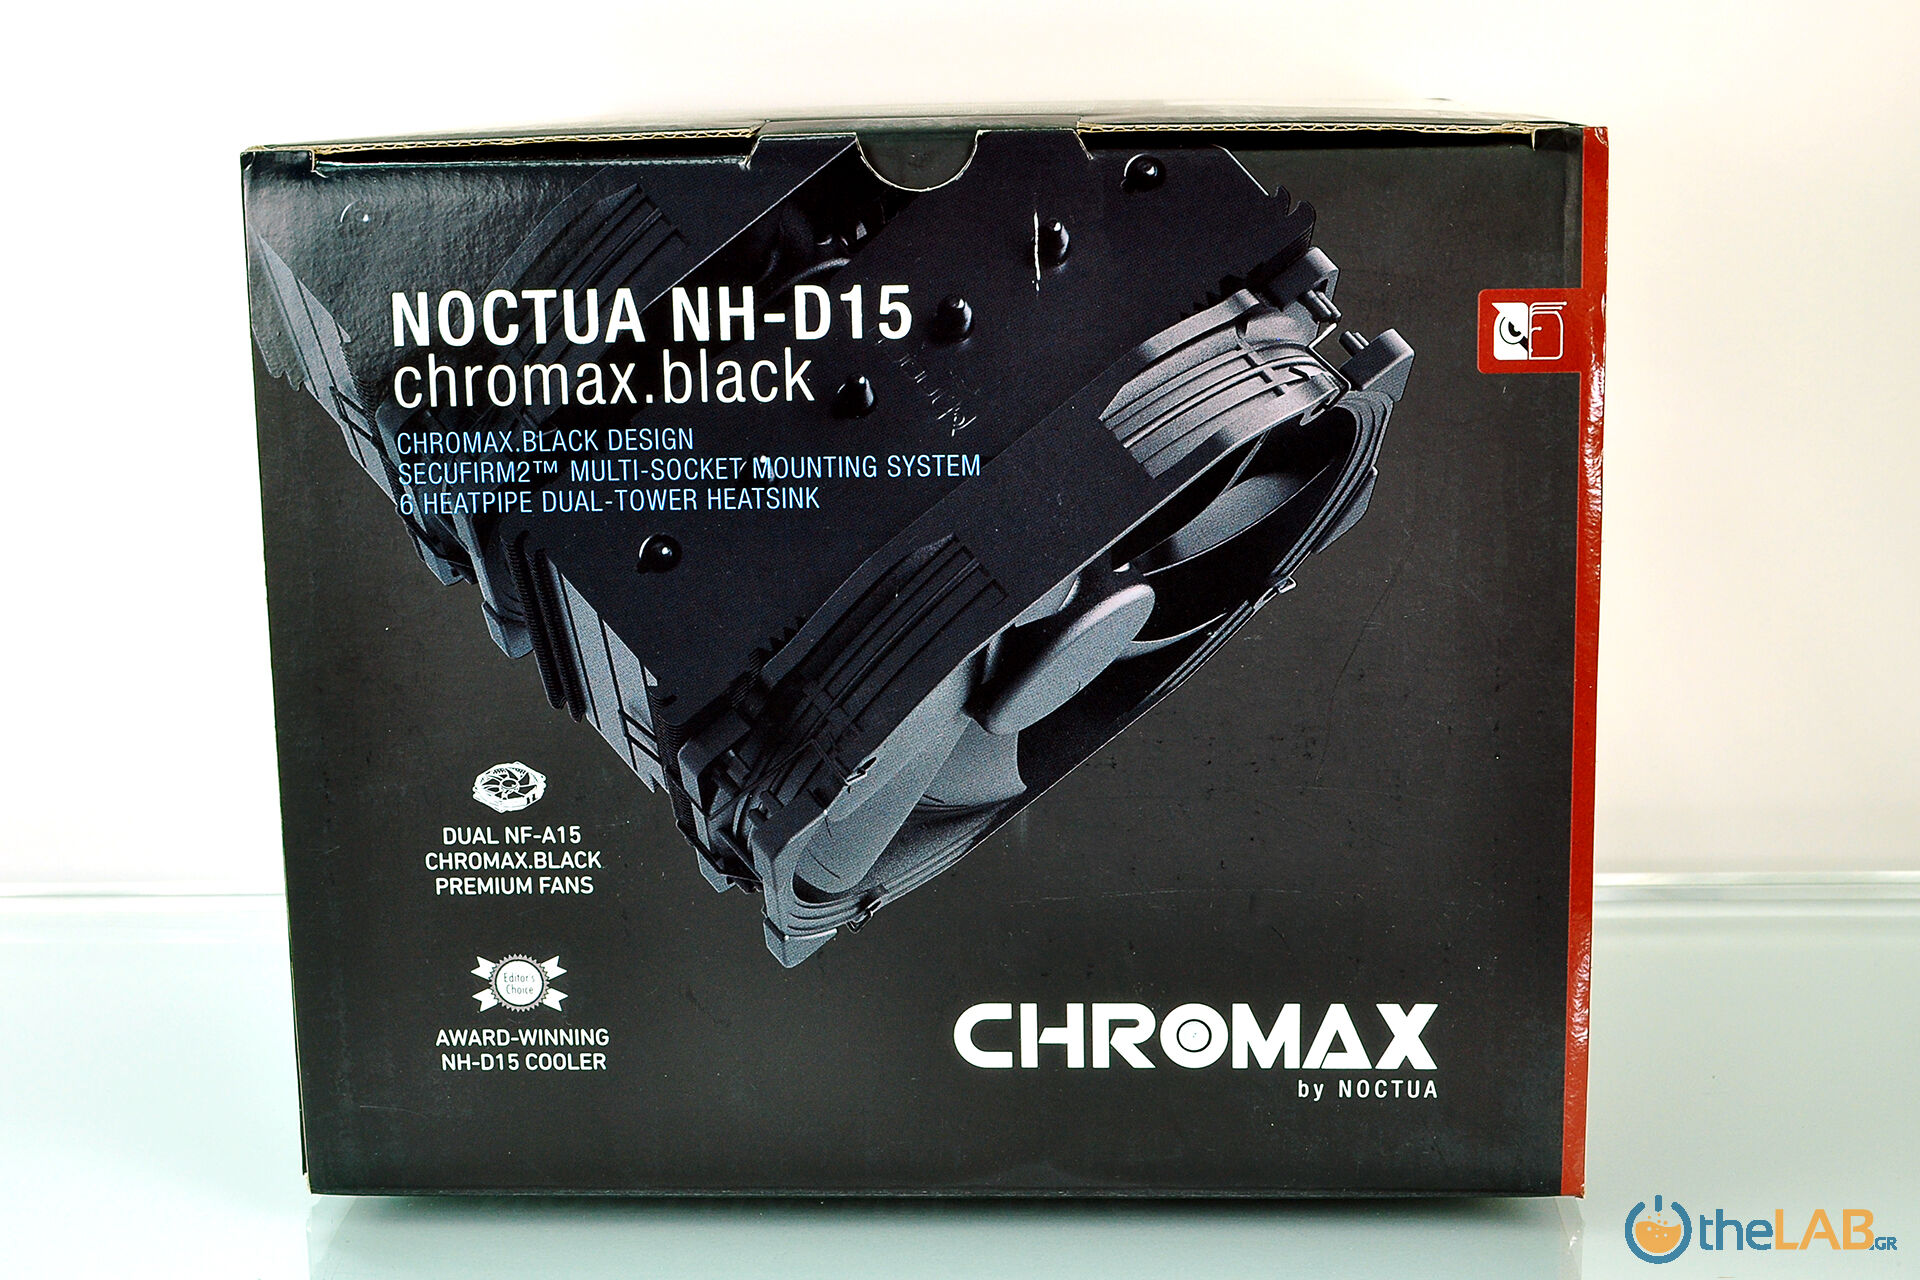 A-06_Noctua NH-D15 chromax.black_06_0327.jpg